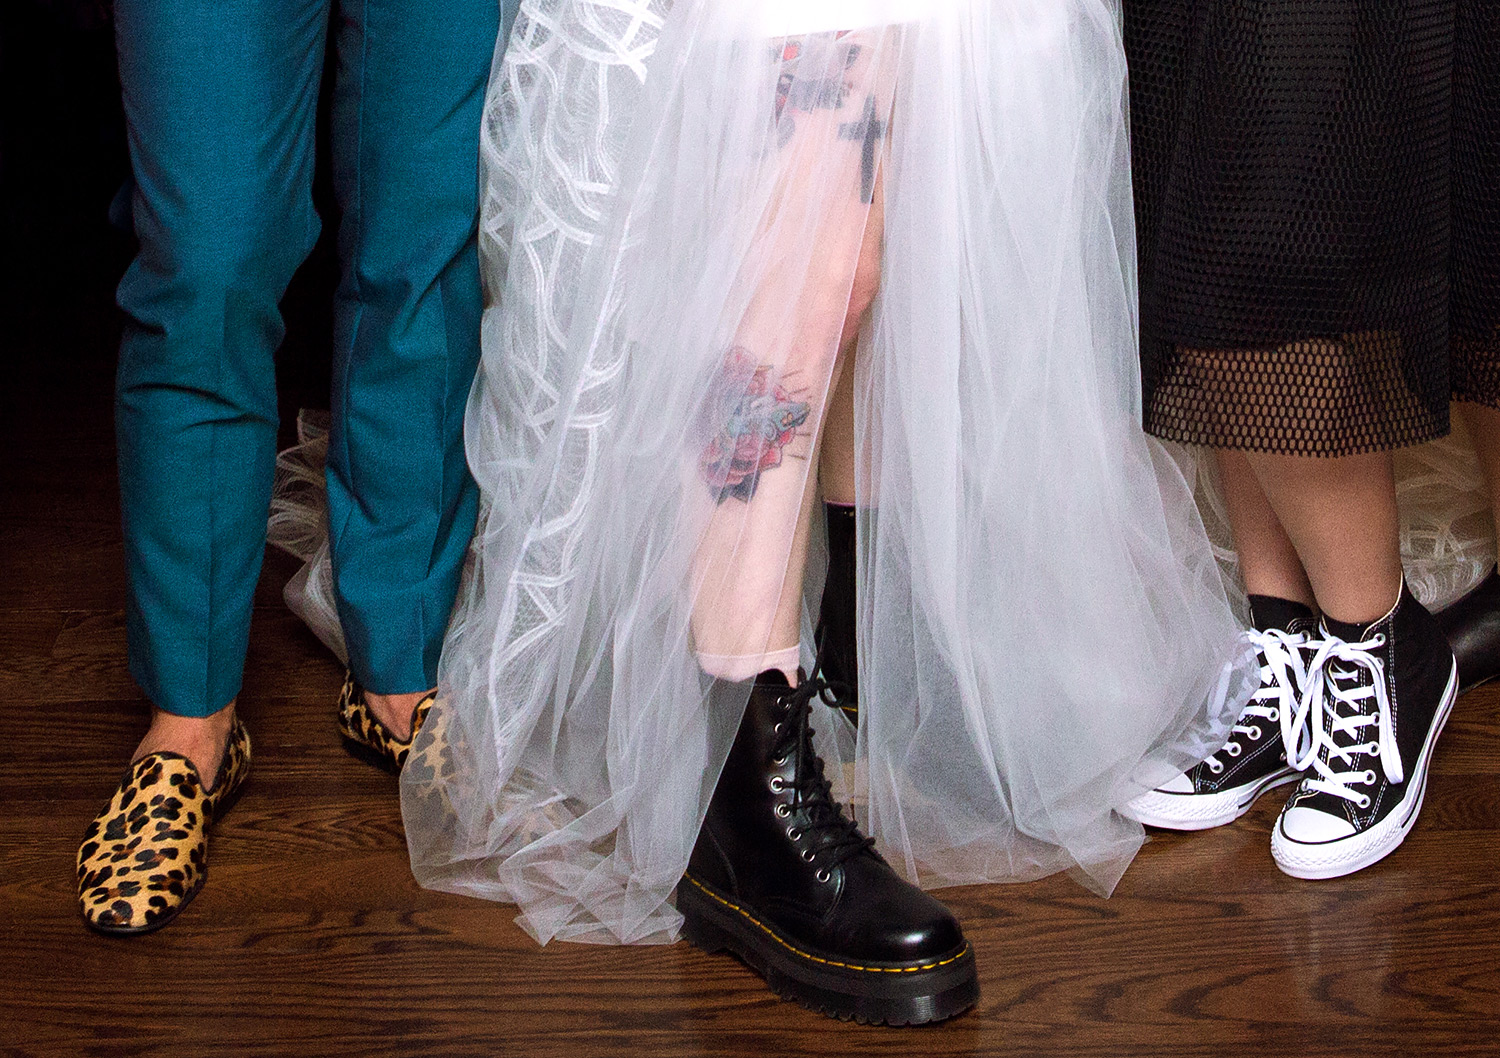 Hayley Williams' wedding boots